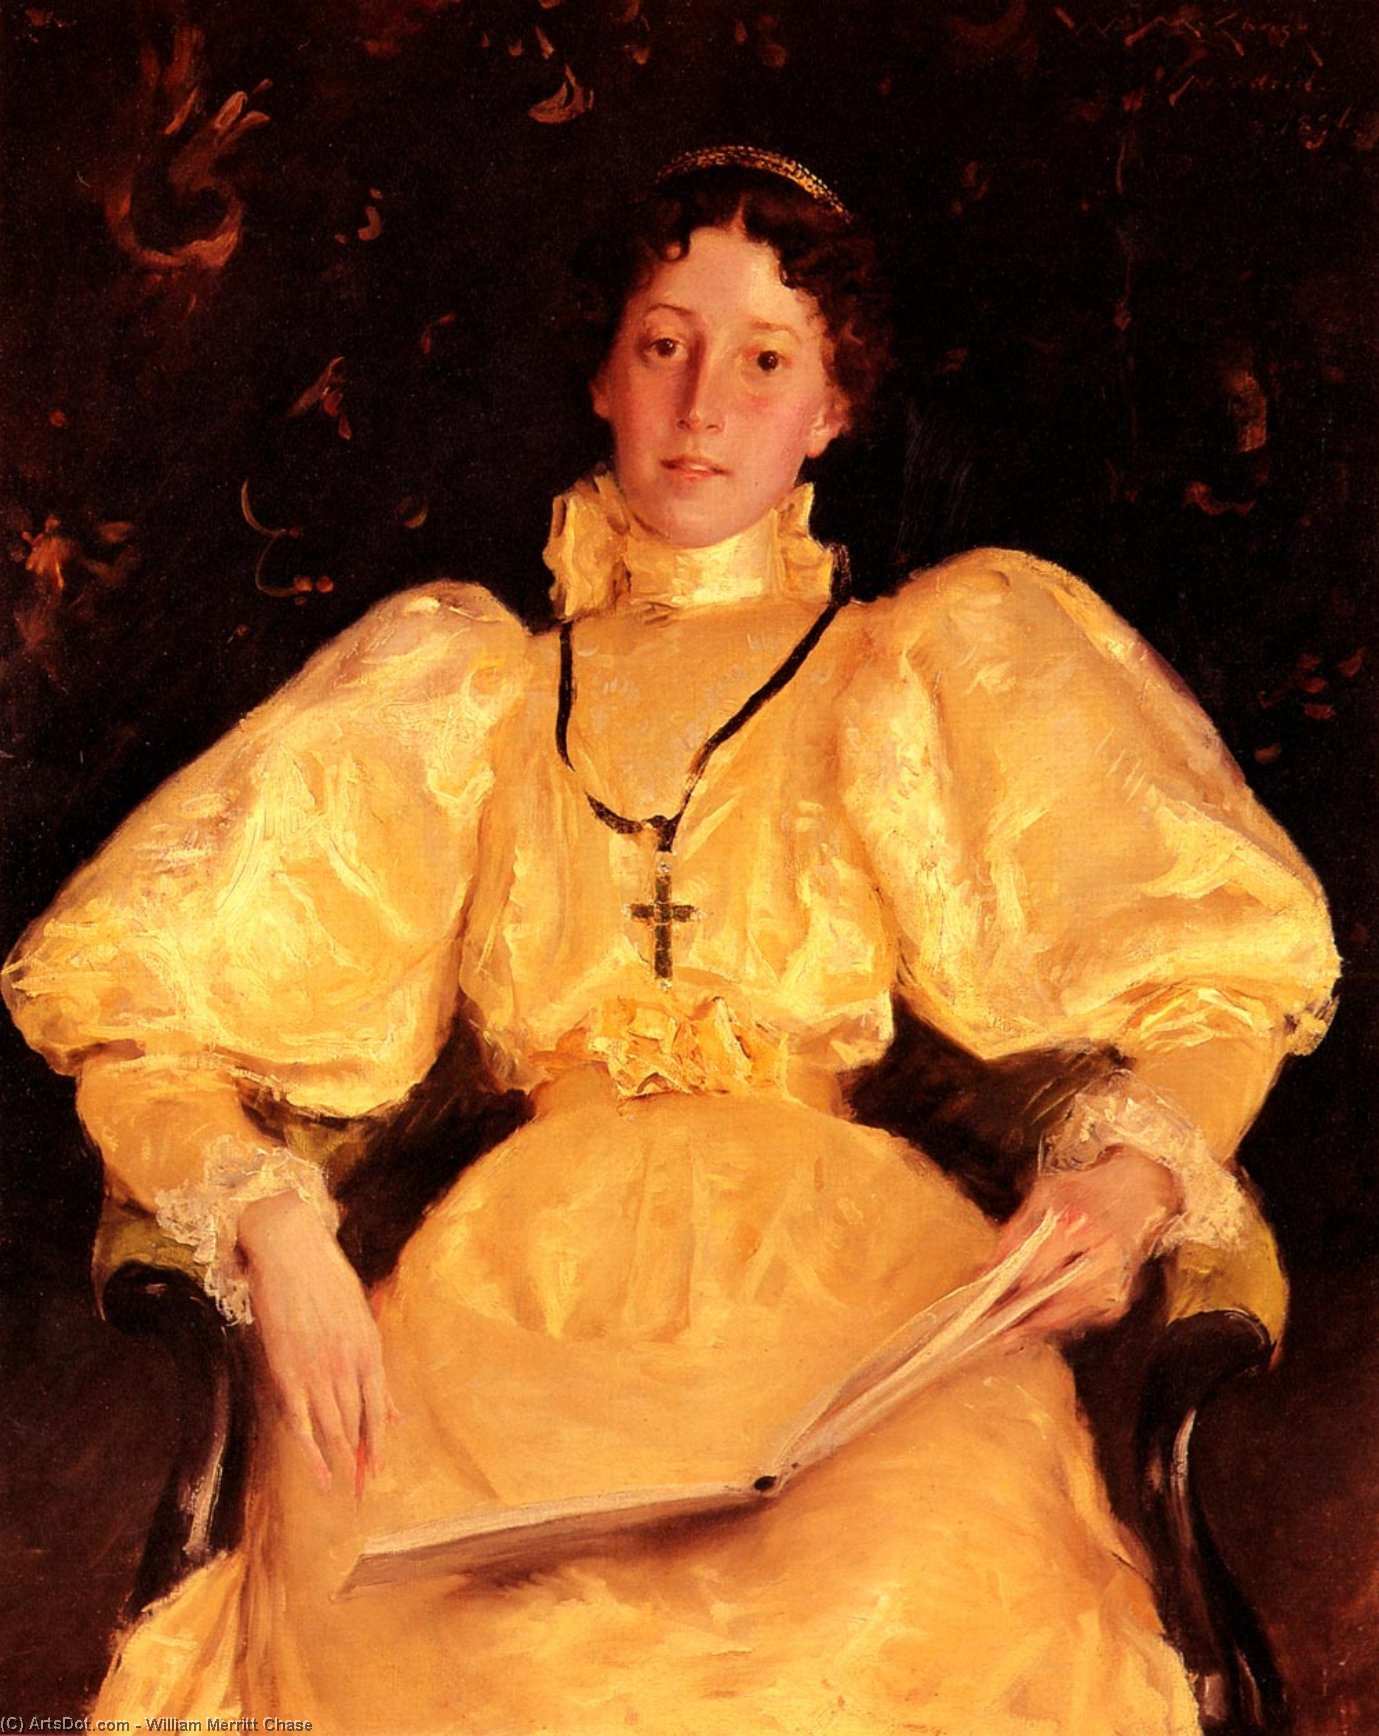 La Dame d or, huile sur toile de William Merritt Chase (1849-1916, United States)